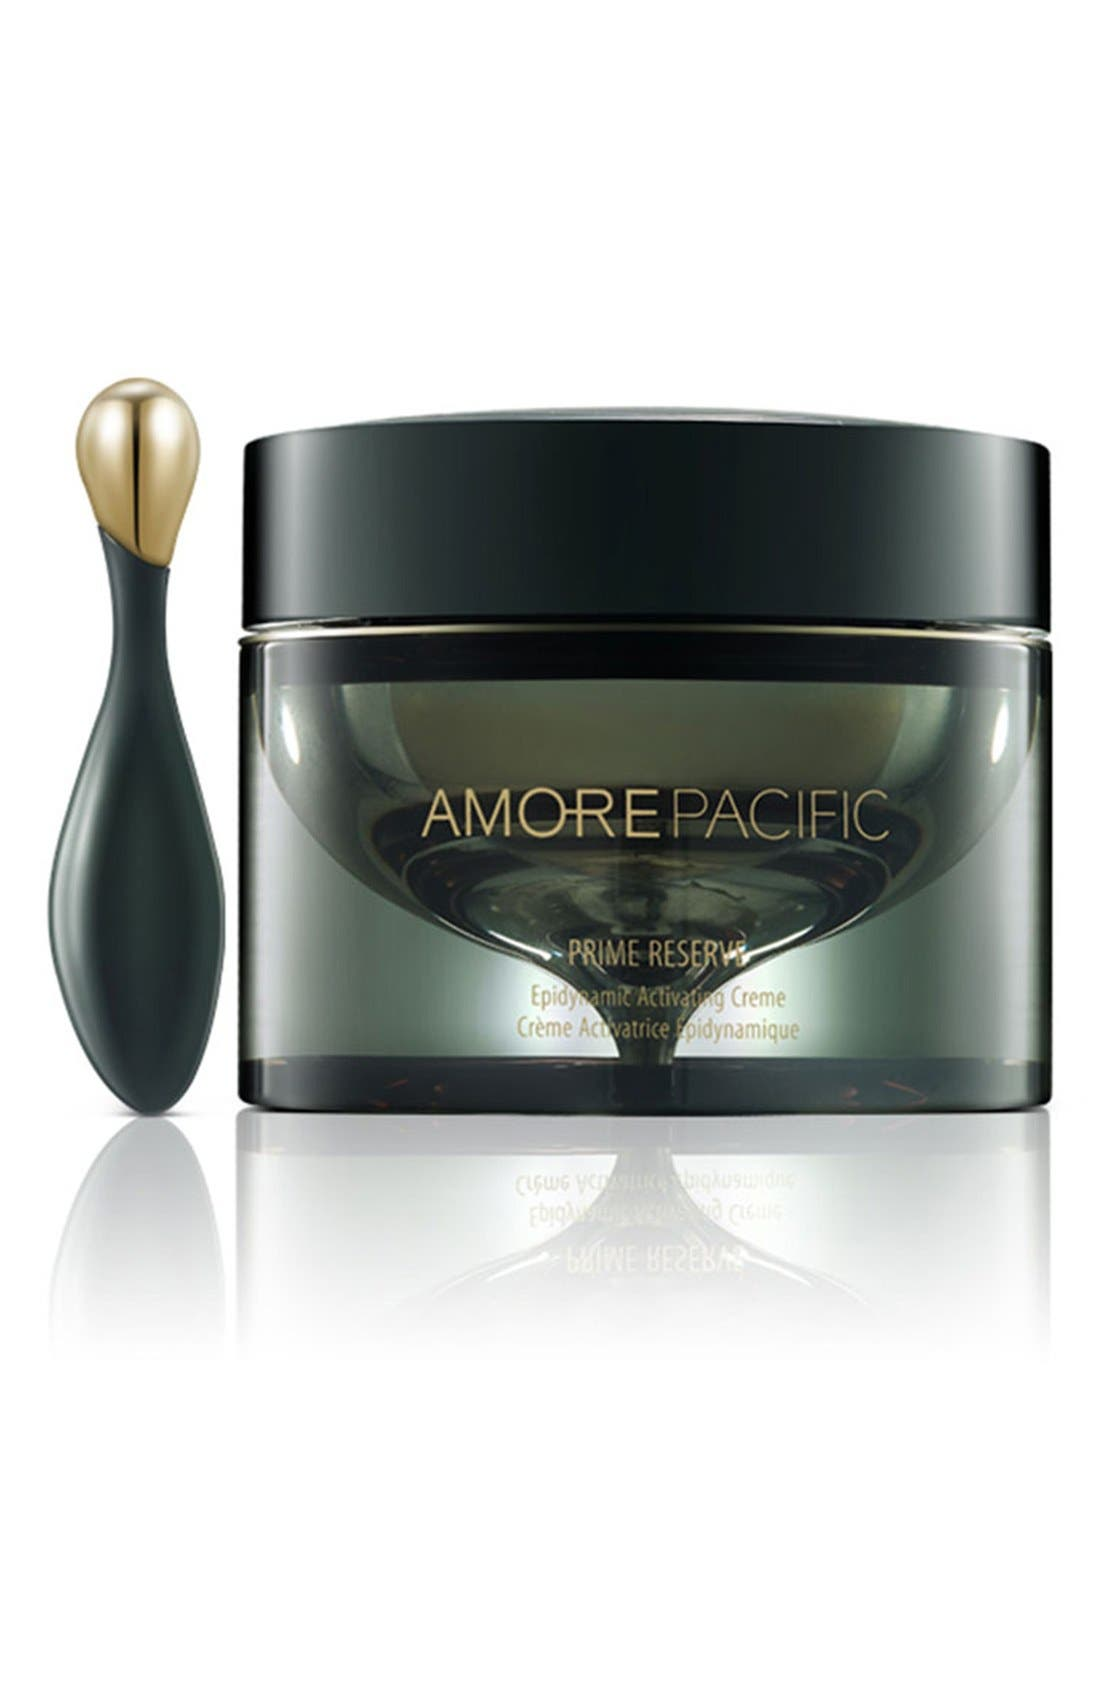 AMOREPACIFIC,                             'Prime Reserve' Epidynamic Activating Creme,                             Alternate thumbnail 2, color,                             000